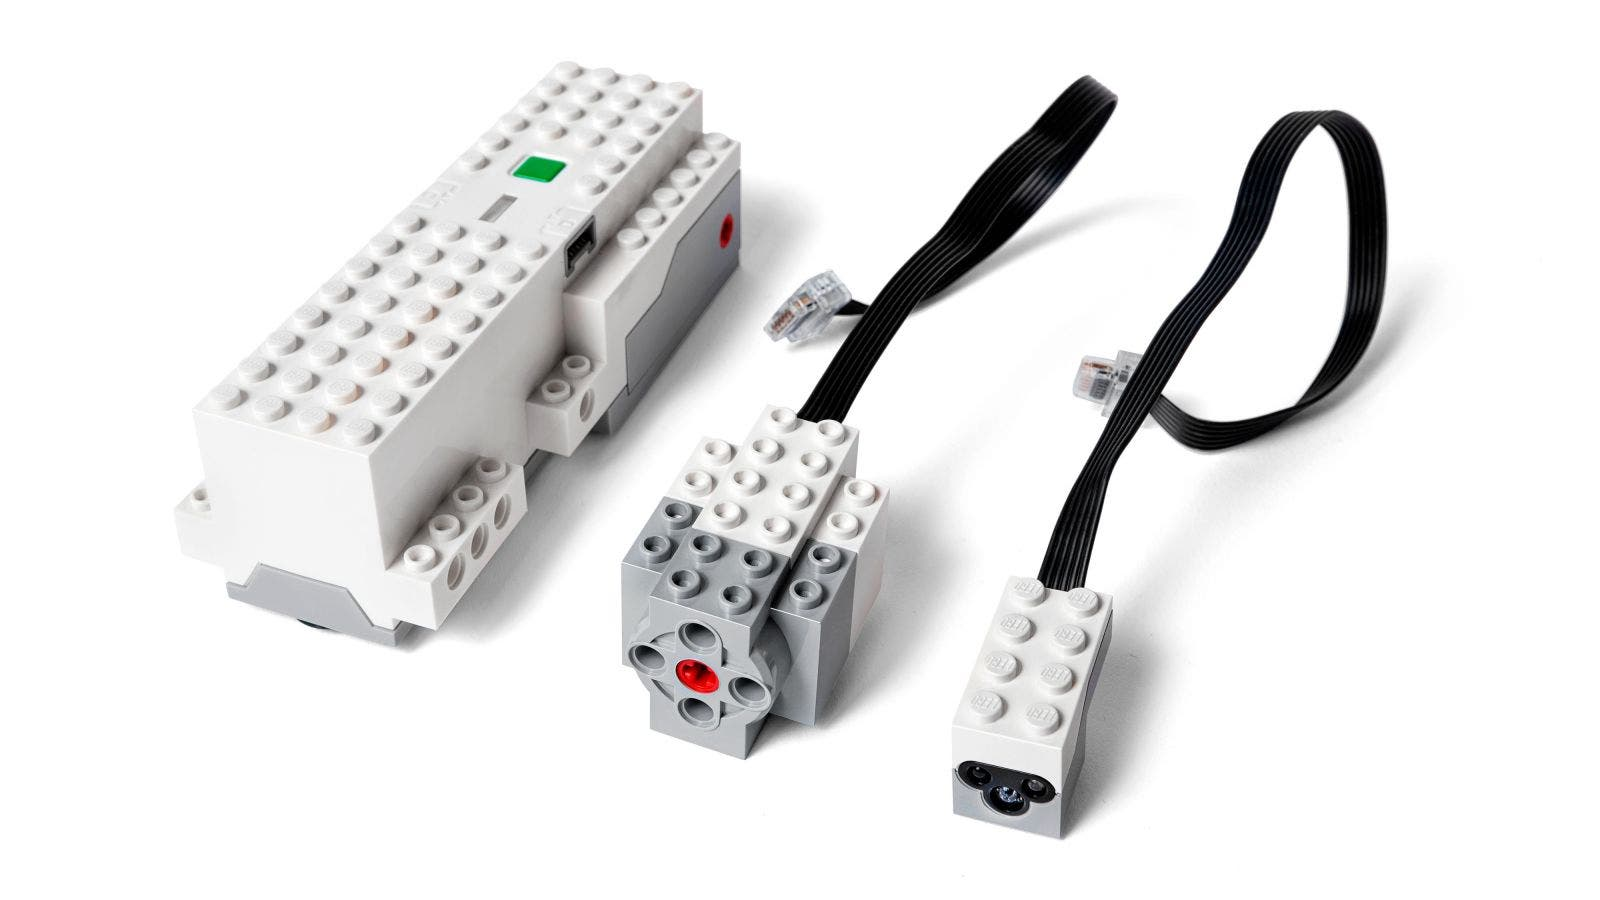 Lego Boost Smart Bricks